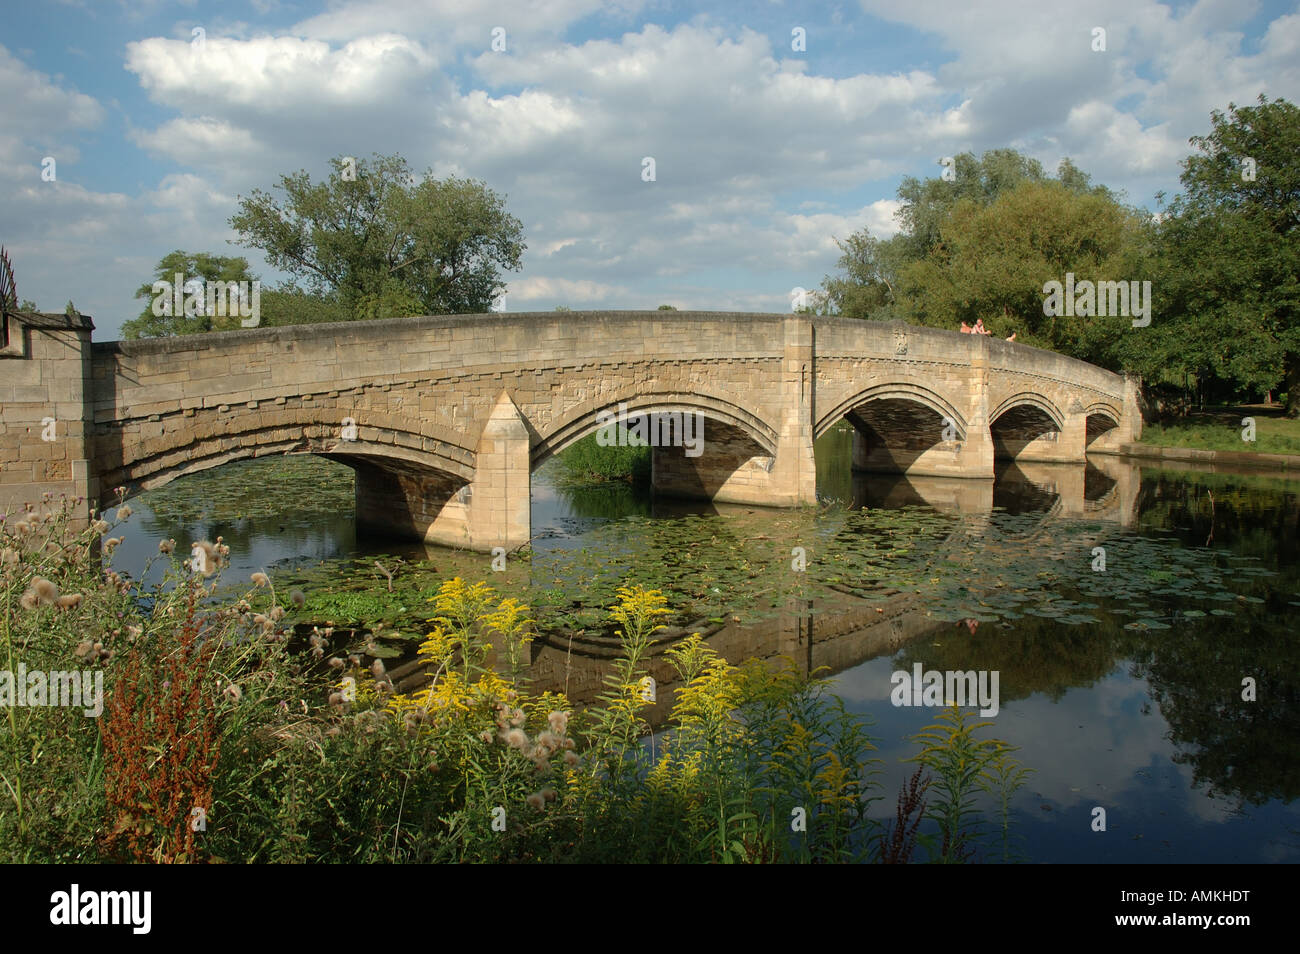 the River Soar, Abbey Park, Leicester, England, UK - Stock Image